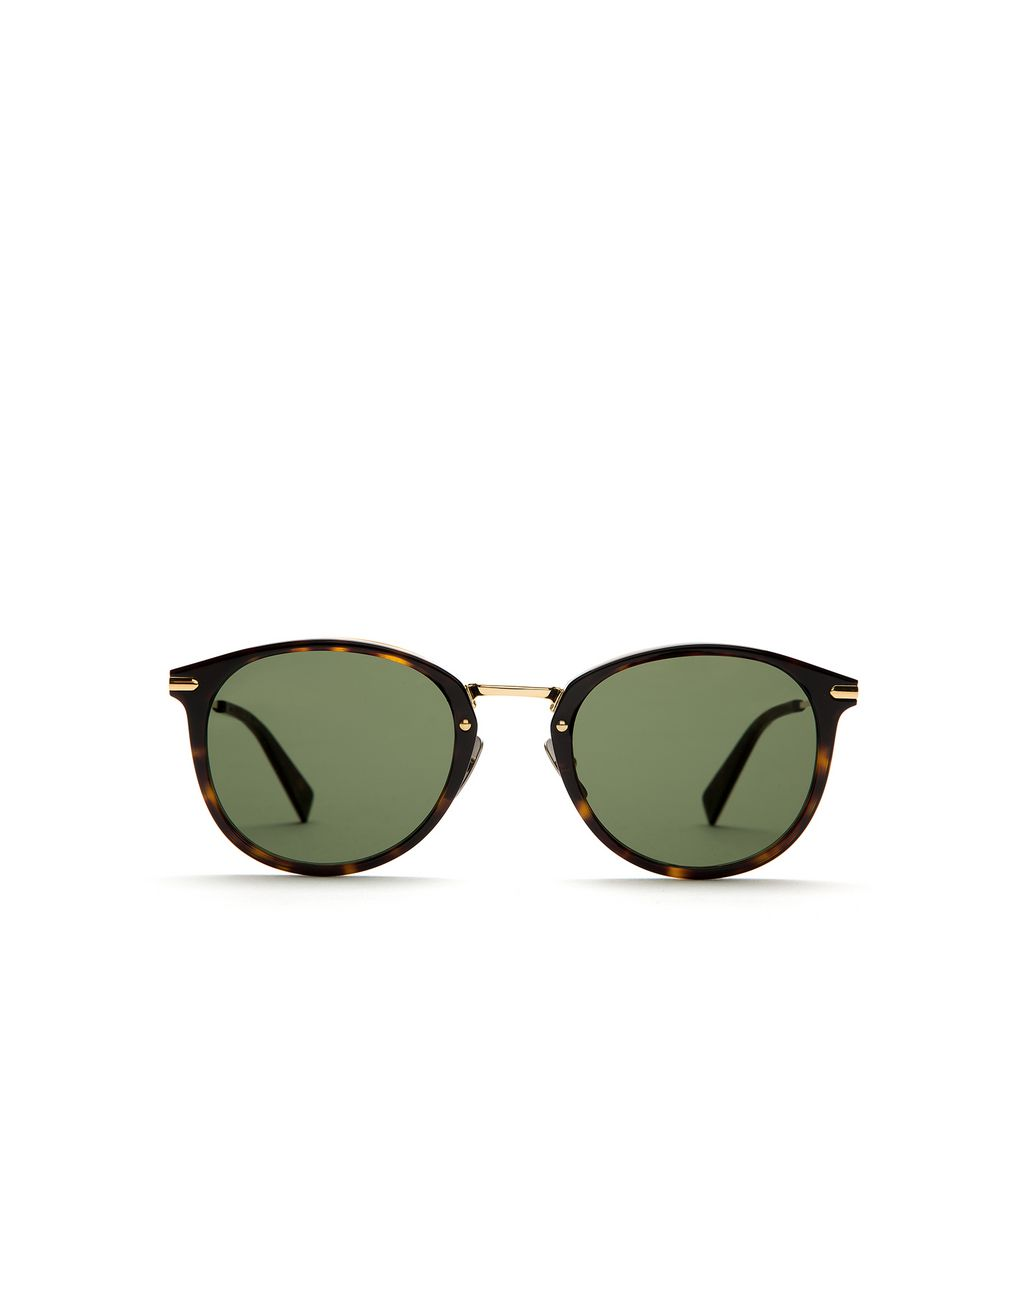 BRIONI Shiny Havana Sunglasses with Green Lenses Sunglasses Man f